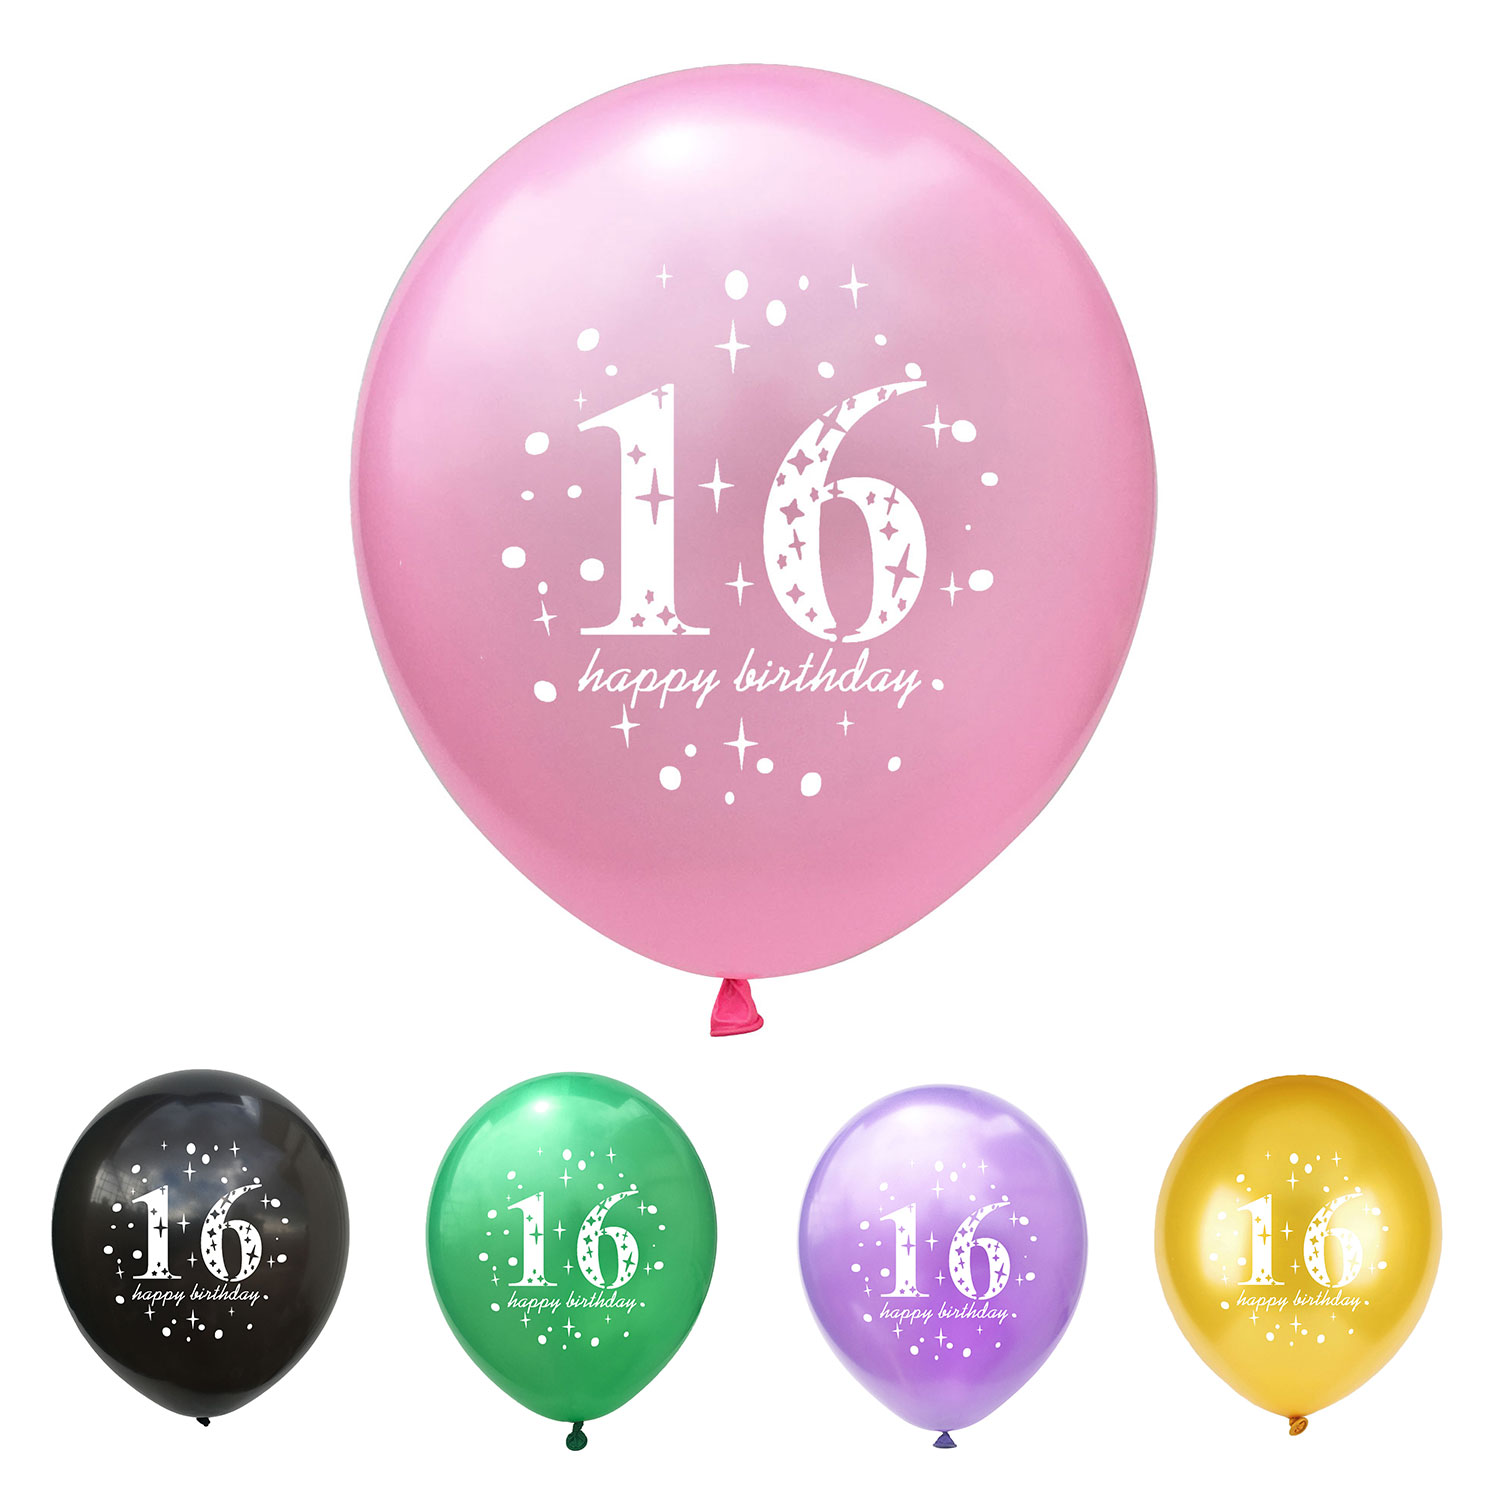 ZLJQ 16th Birthday Latex Balloons 12inch 10pcs Girl Gold Happy Party Decorations Supplies